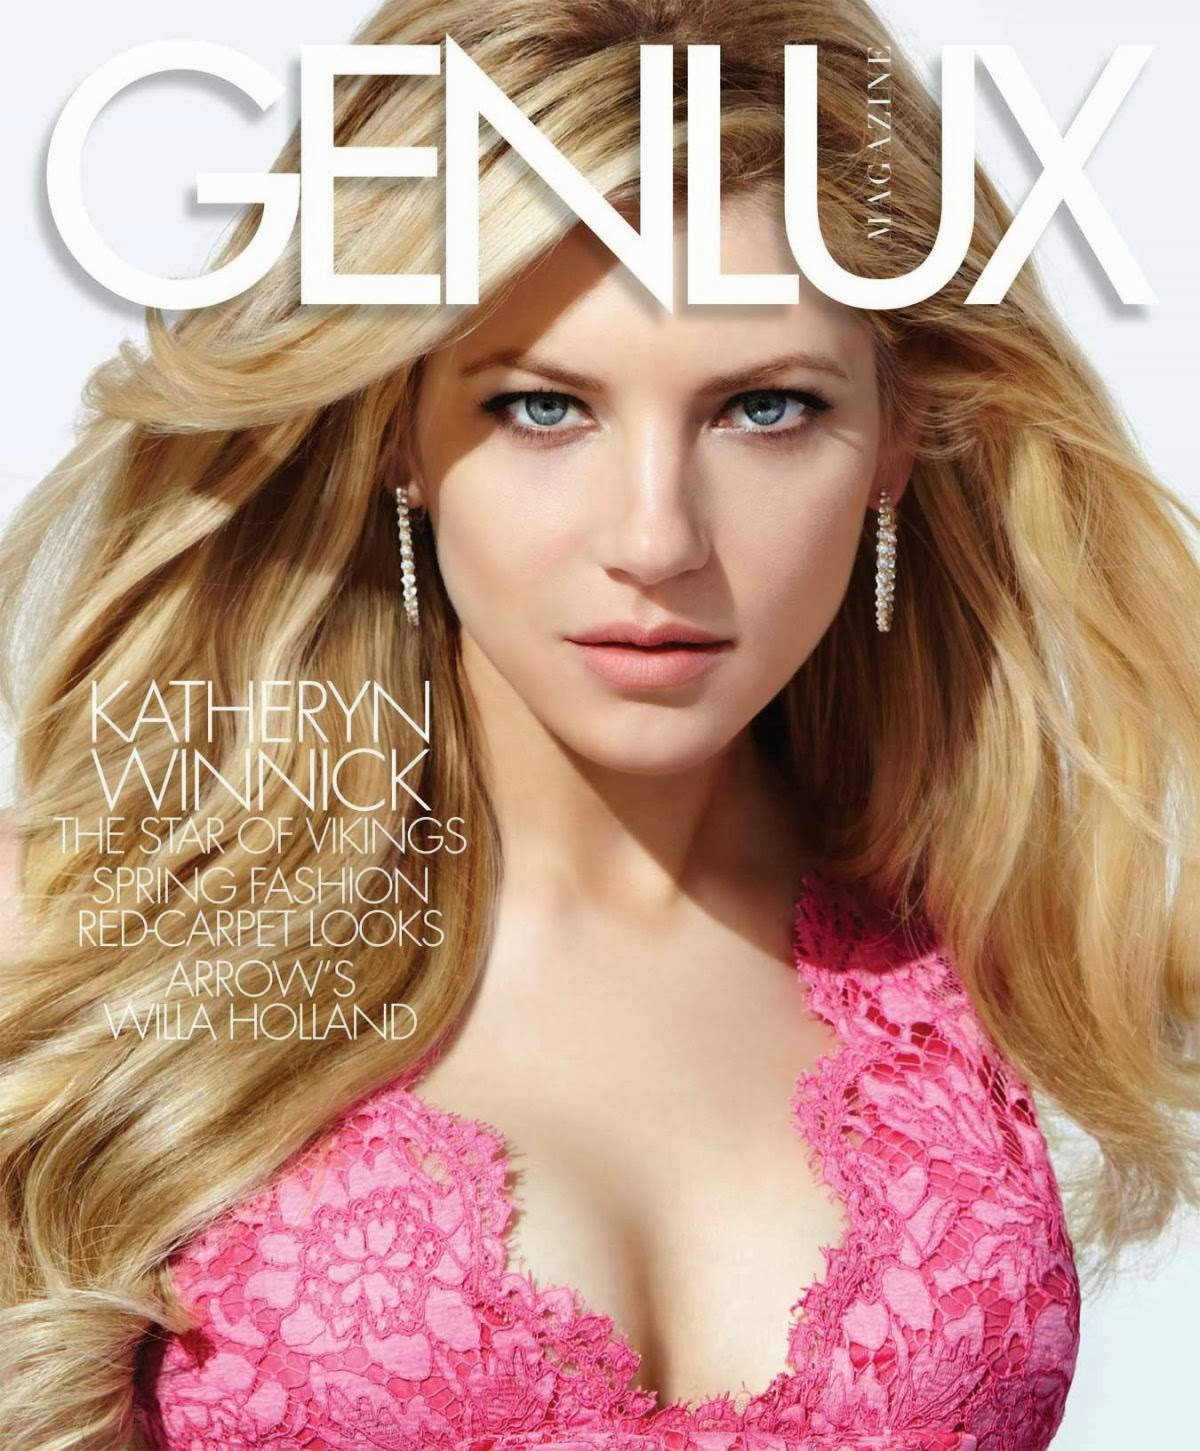 Katheryn Winnick HQ Pictures Genlux Magazine Photoshoot Spring 2014